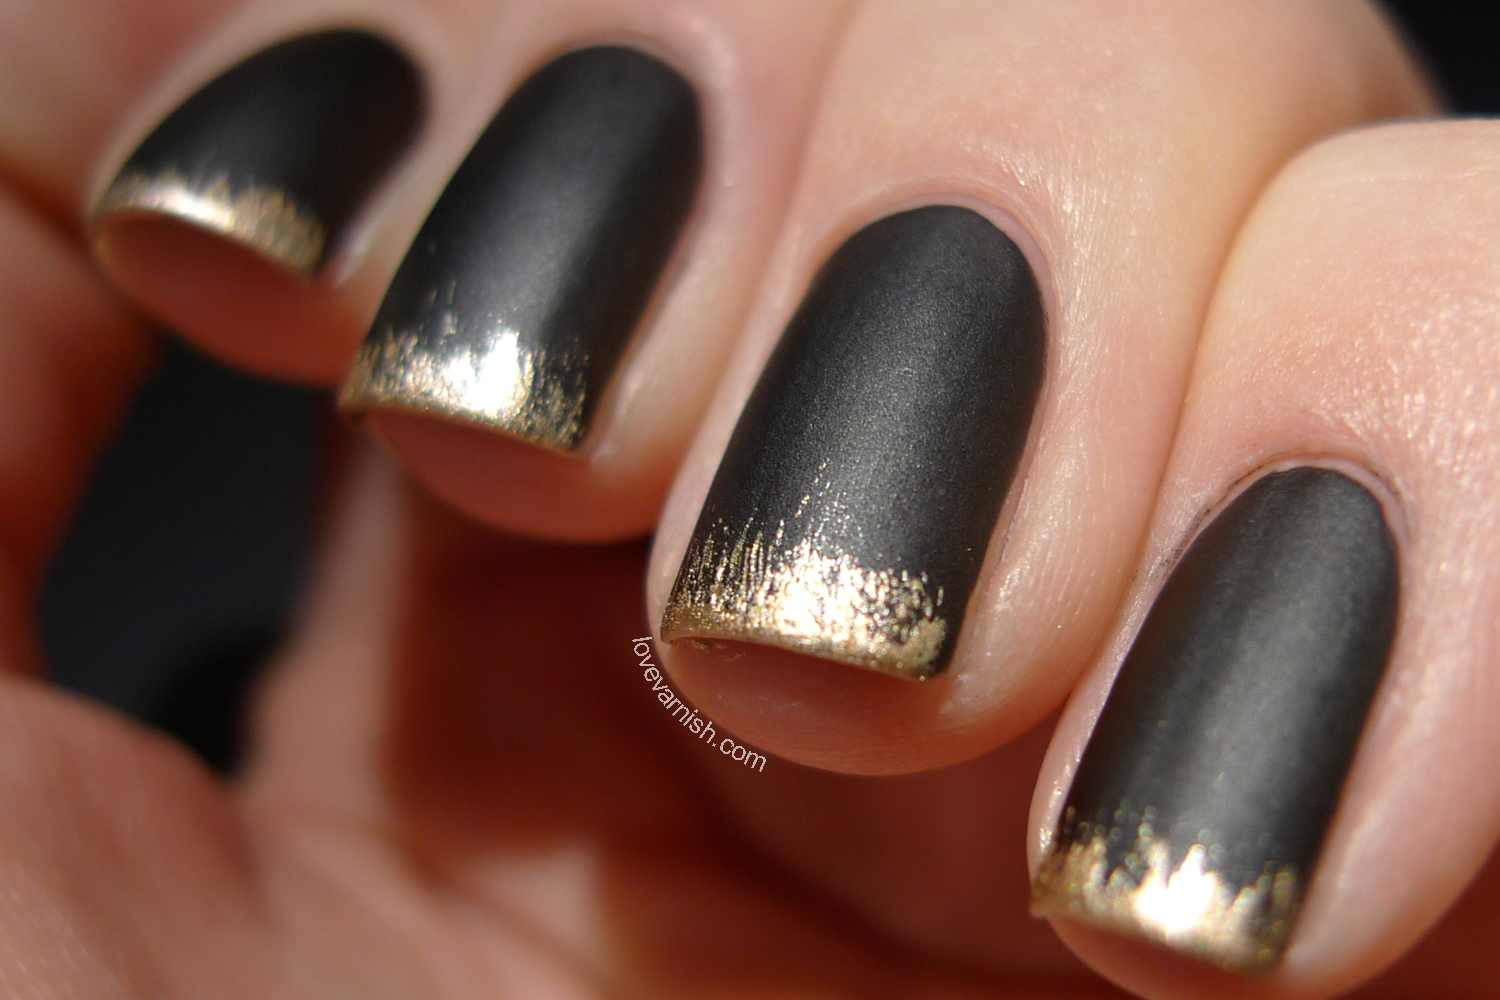 Love Varnish: Inspired by The Nail Polish Challenge - A Grungy ...